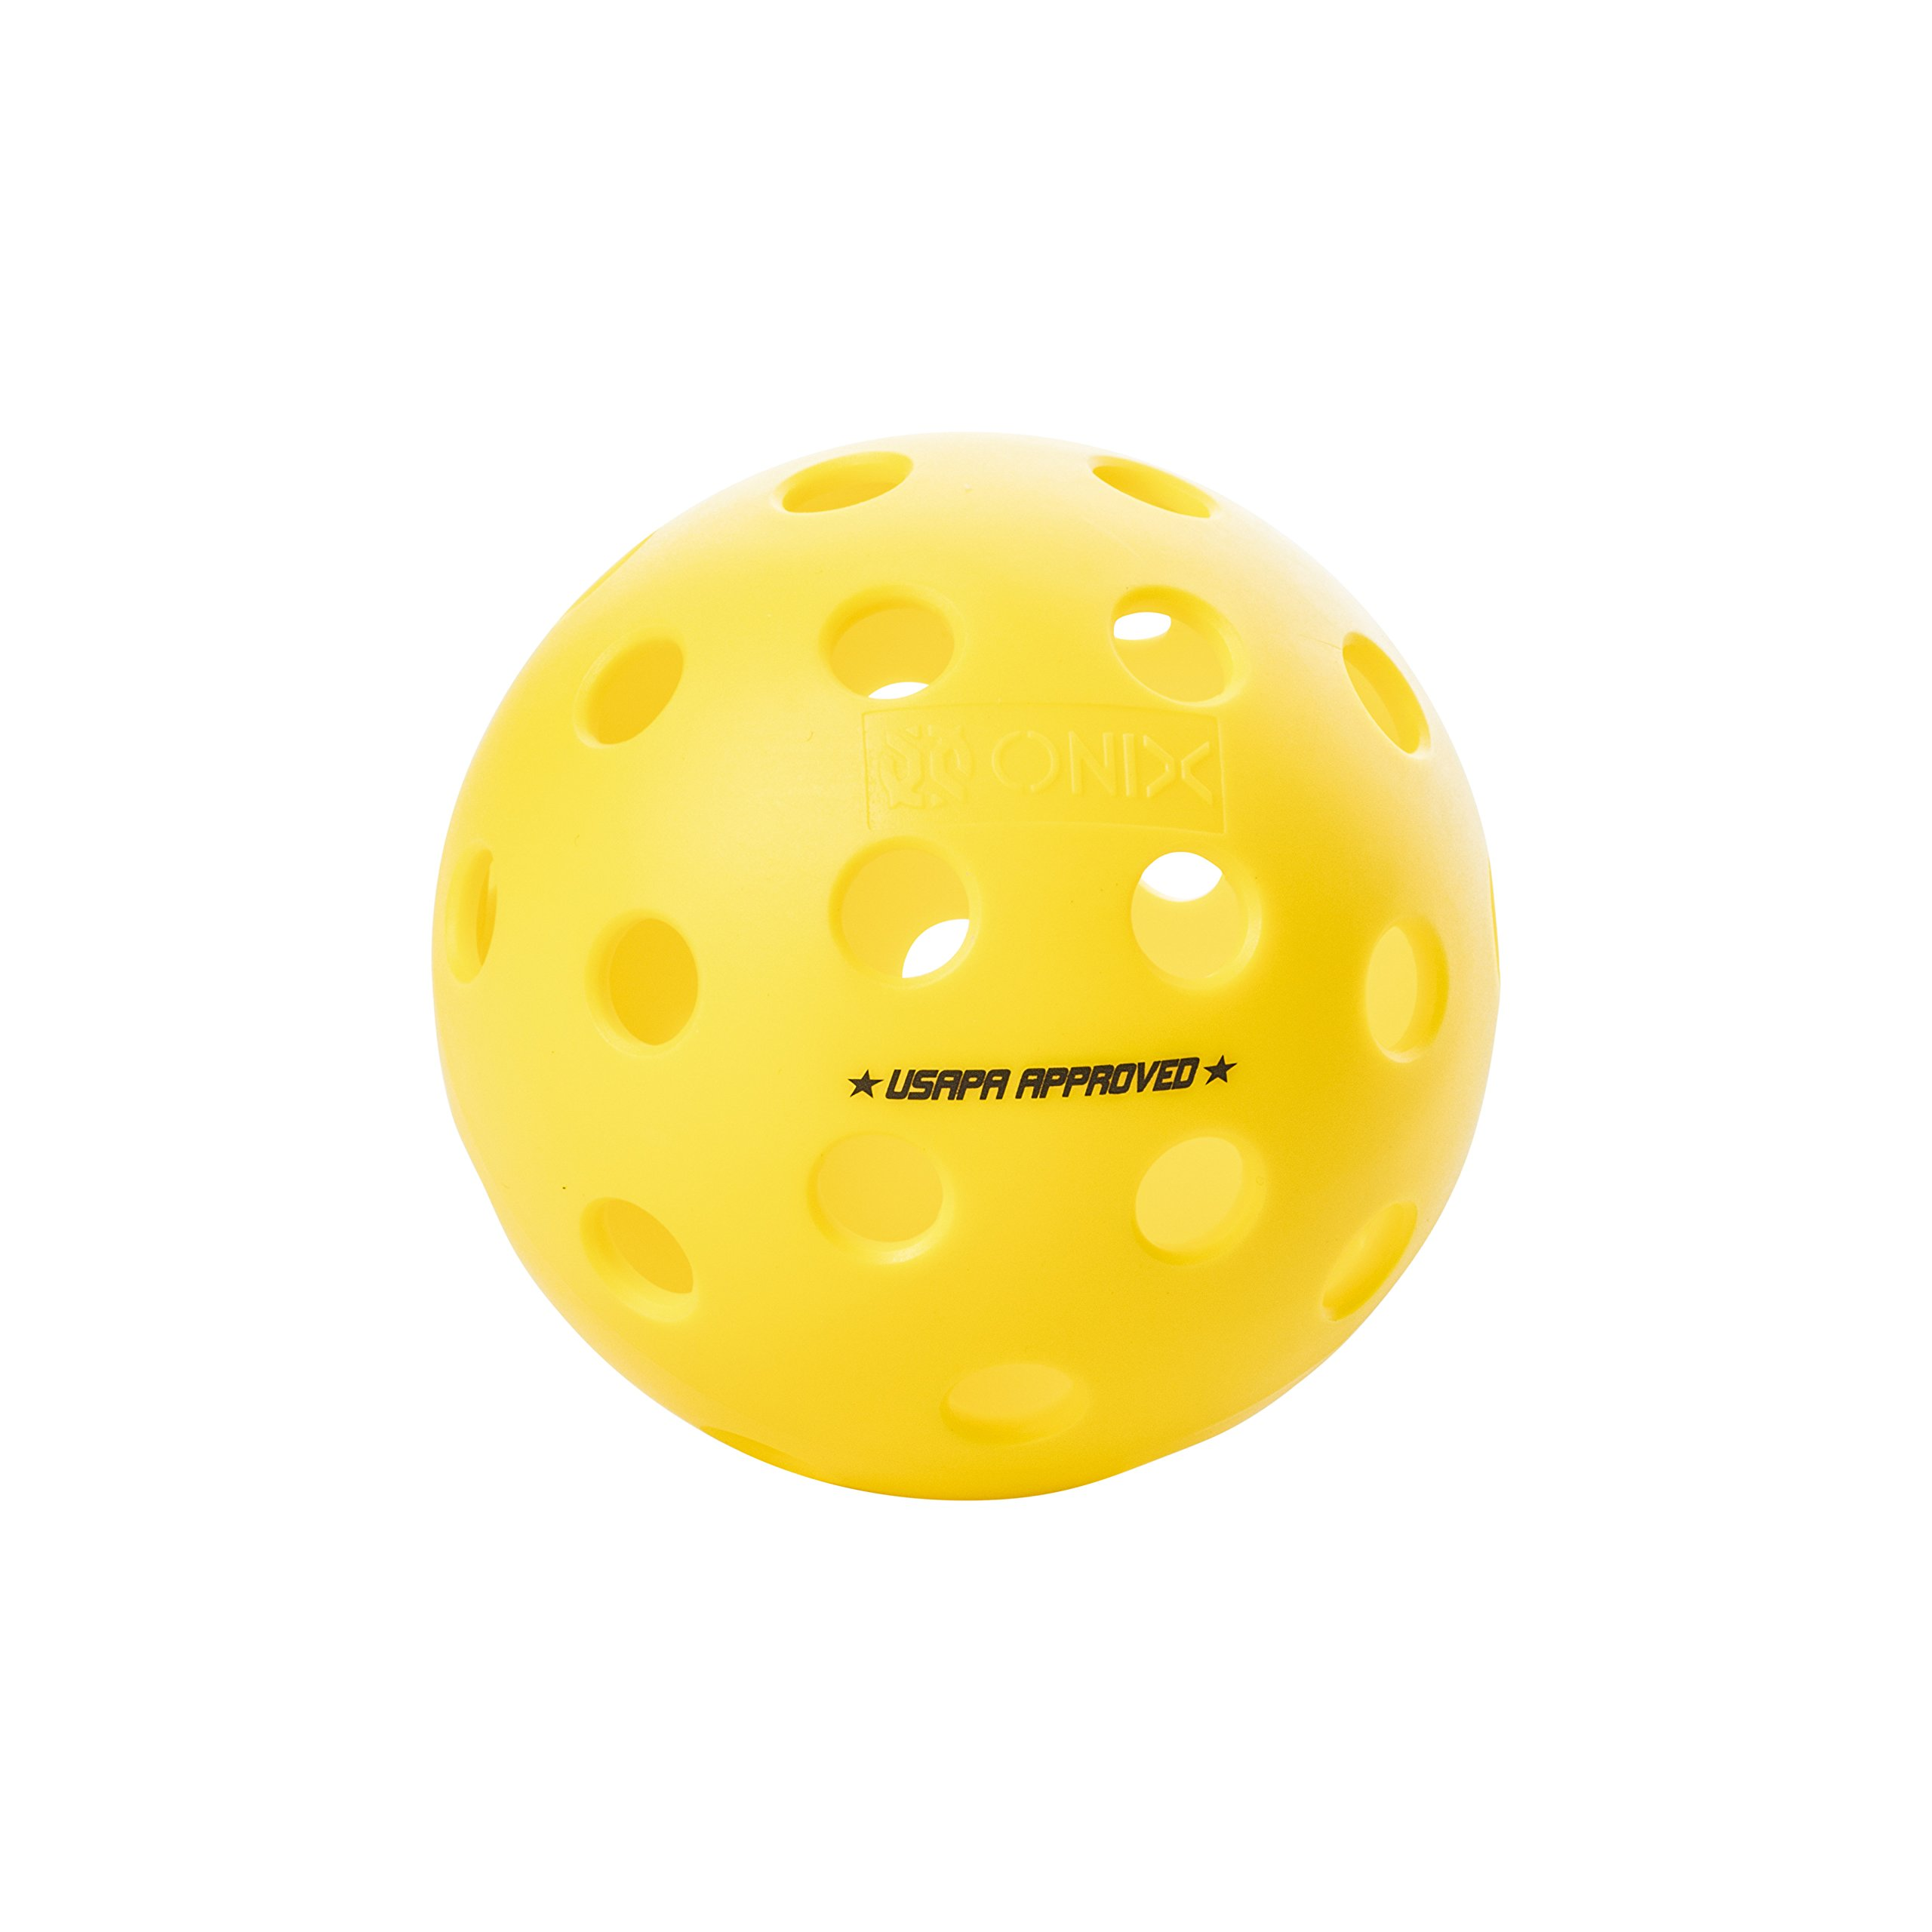 ONIX Fuse Outdoor Pickleball Balls – Three Pack by Onix